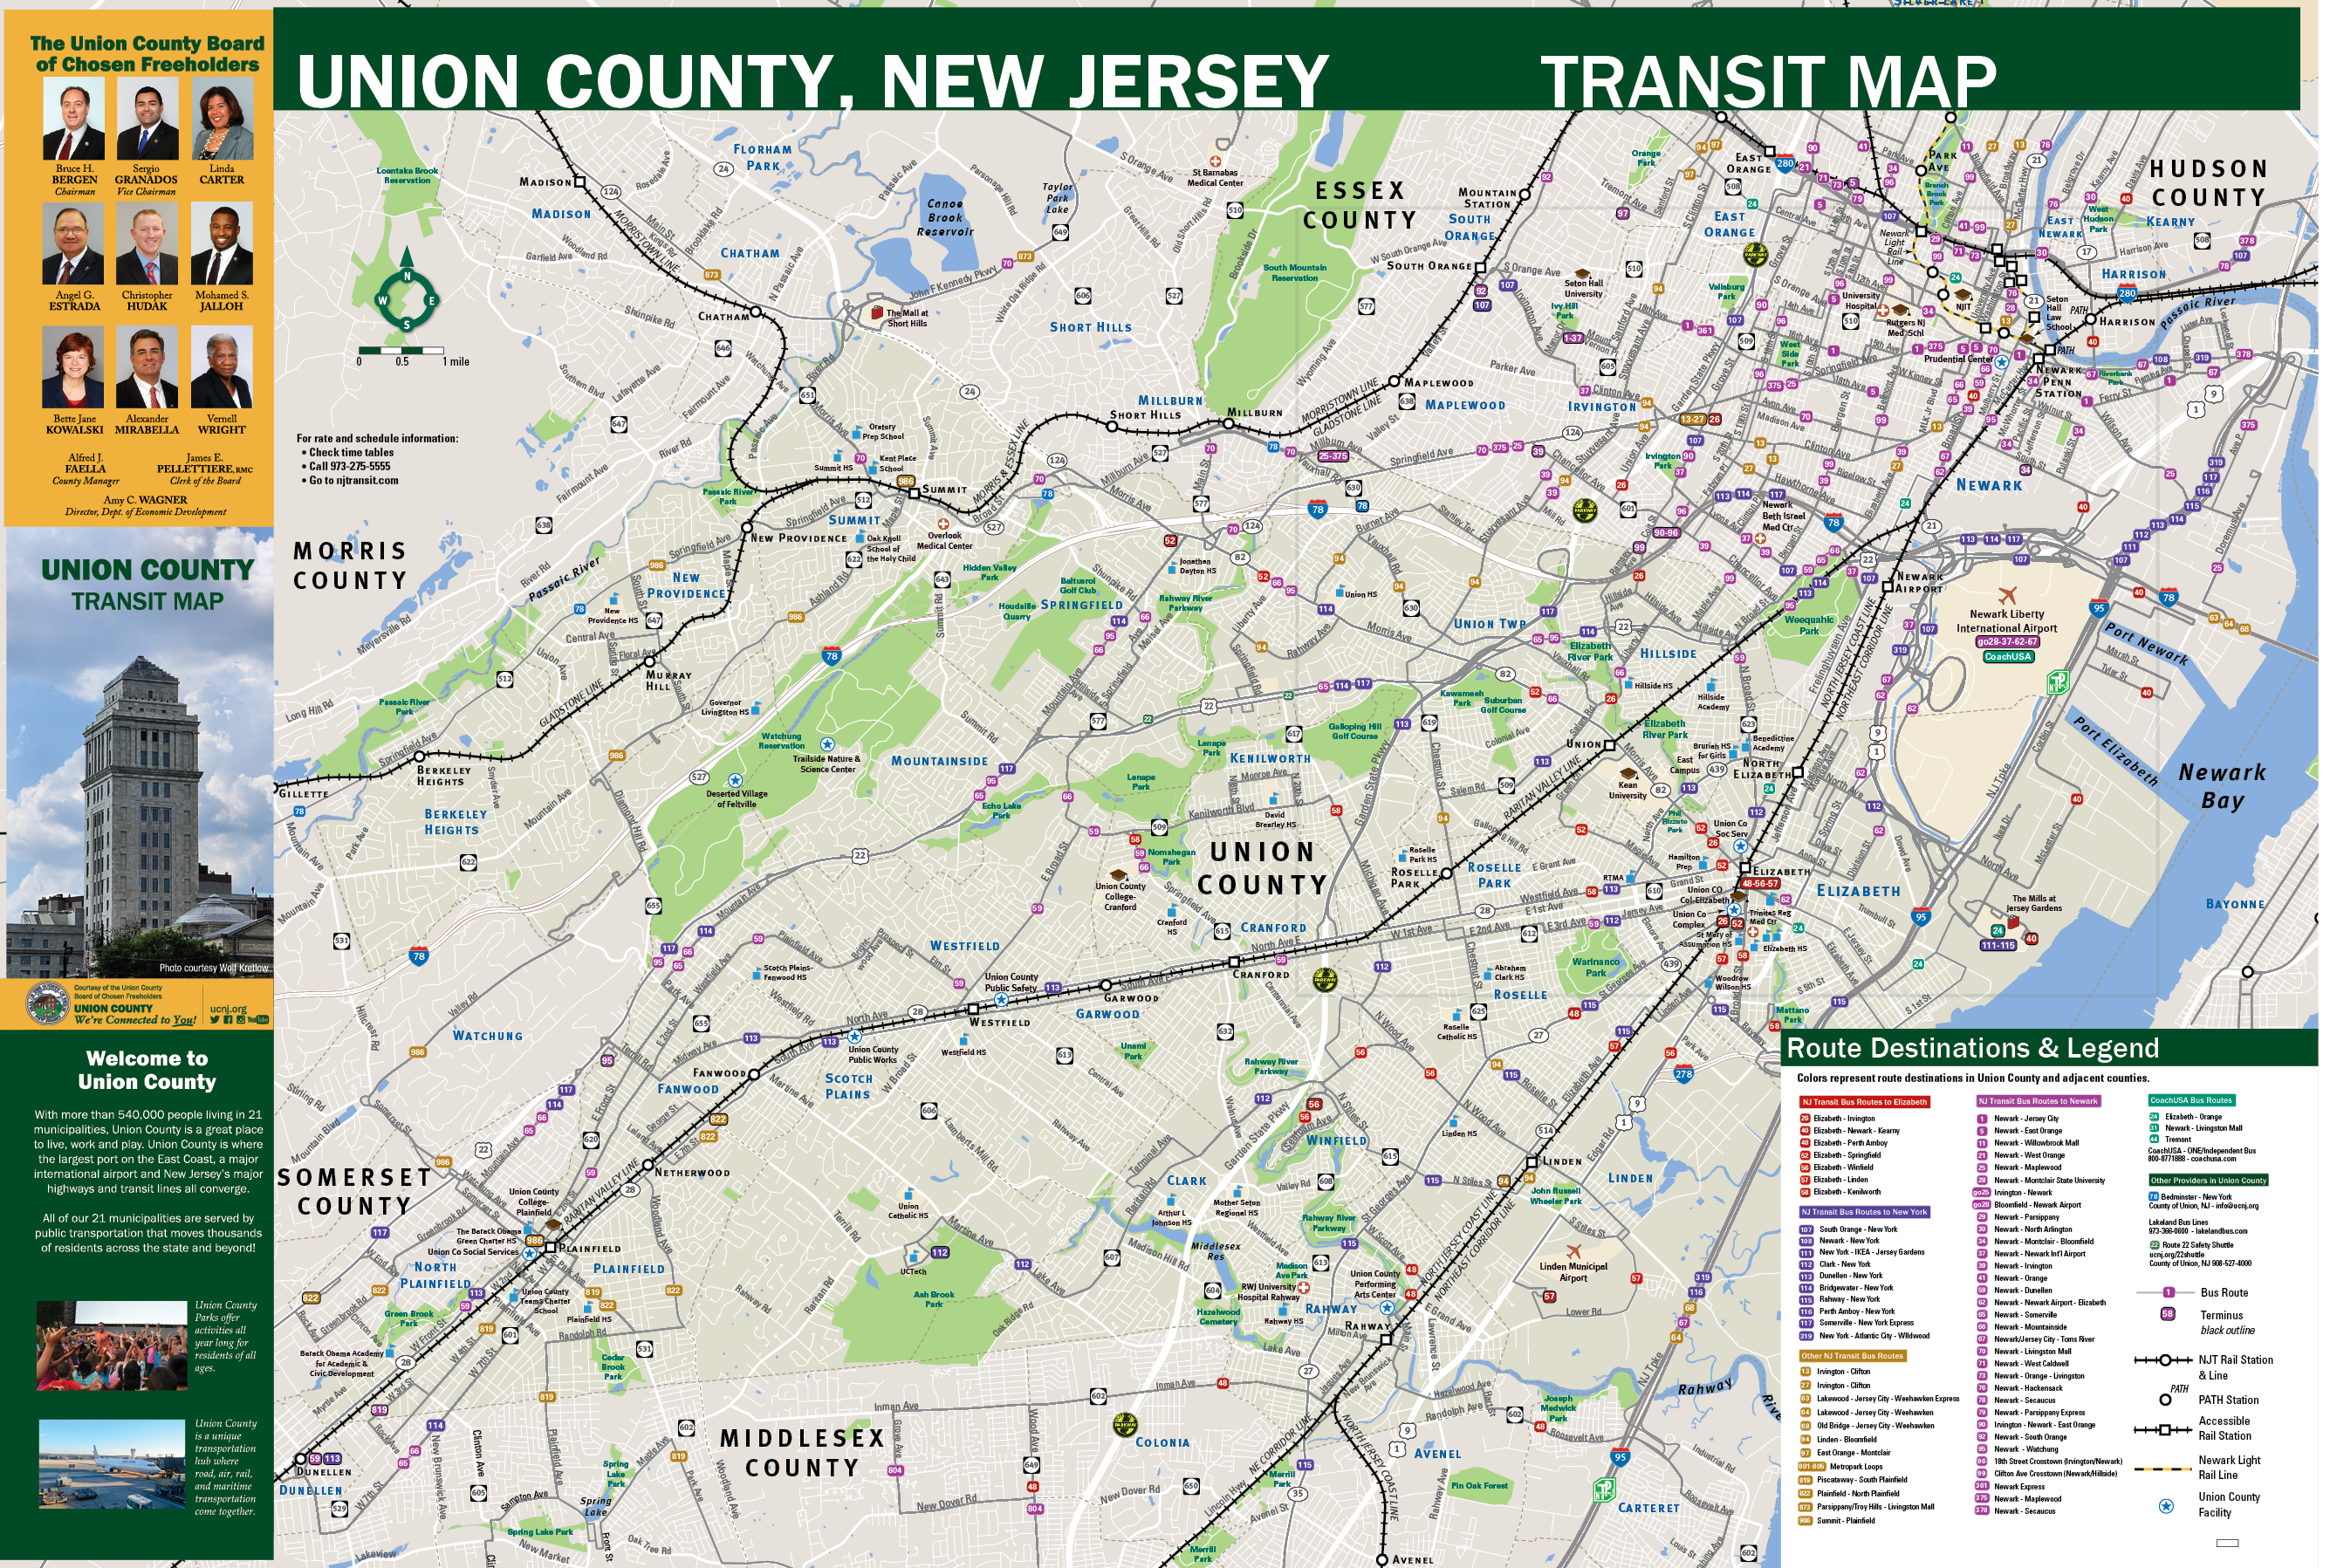 95f6c2a20954912198c7_Union_County_Transit_map.jpg